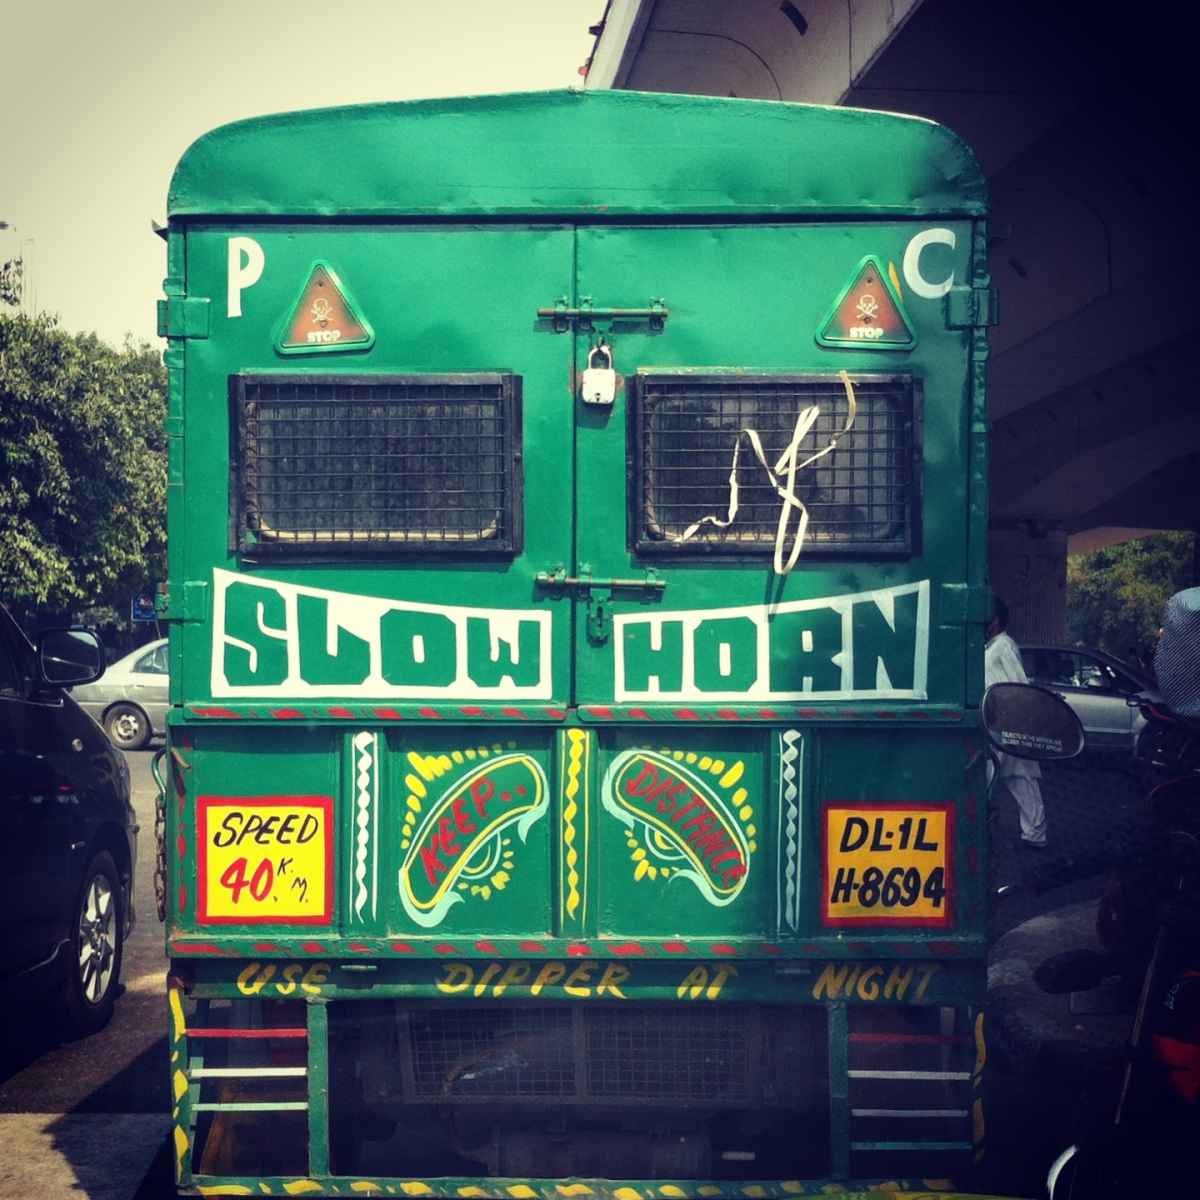 Slow Horn